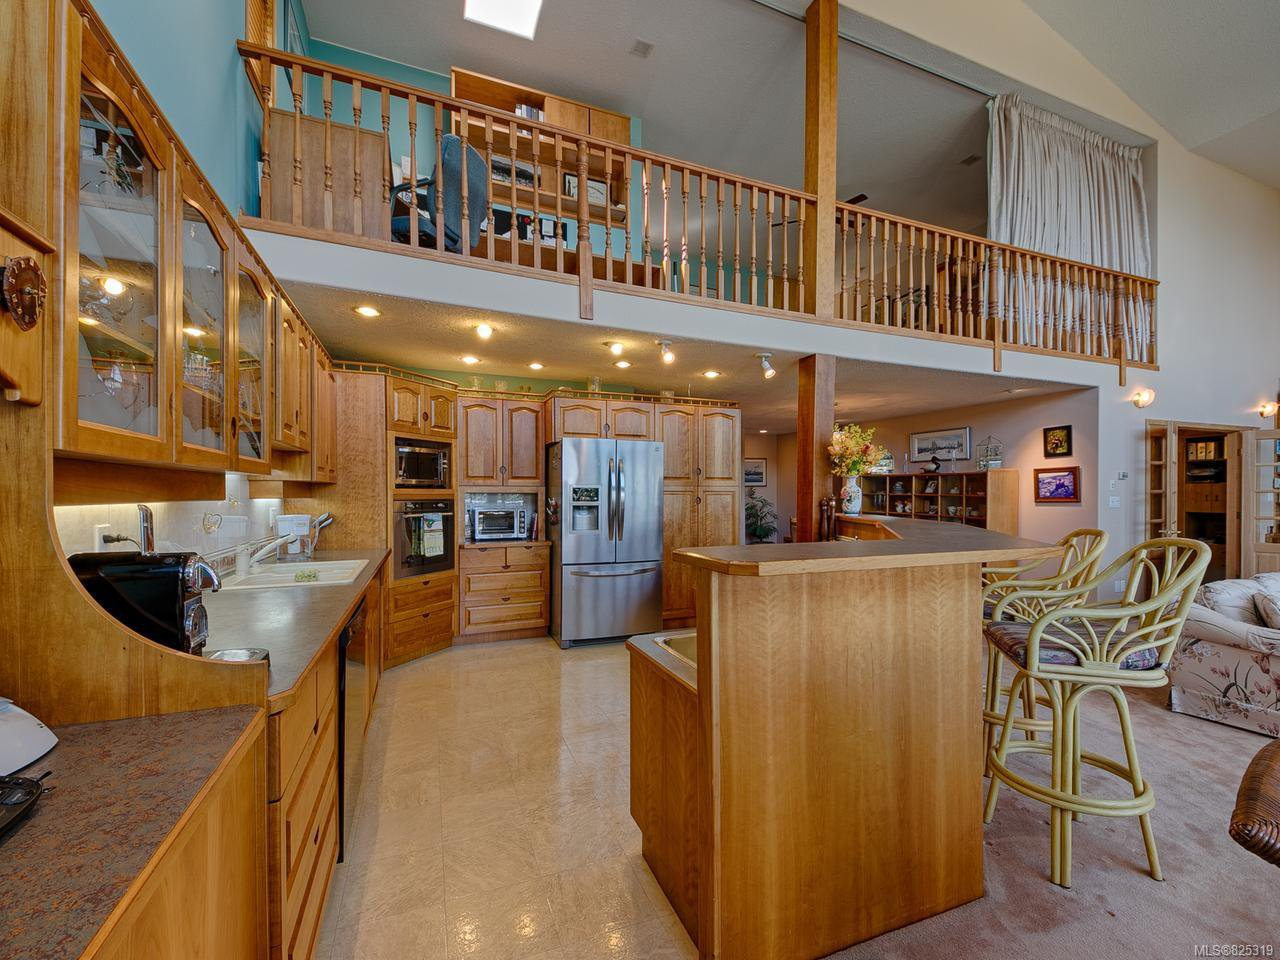 Photo 8: Photos: 403 700 S Island Hwy in CAMPBELL RIVER: CR Campbell River Central Condo for sale (Campbell River)  : MLS®# 825319